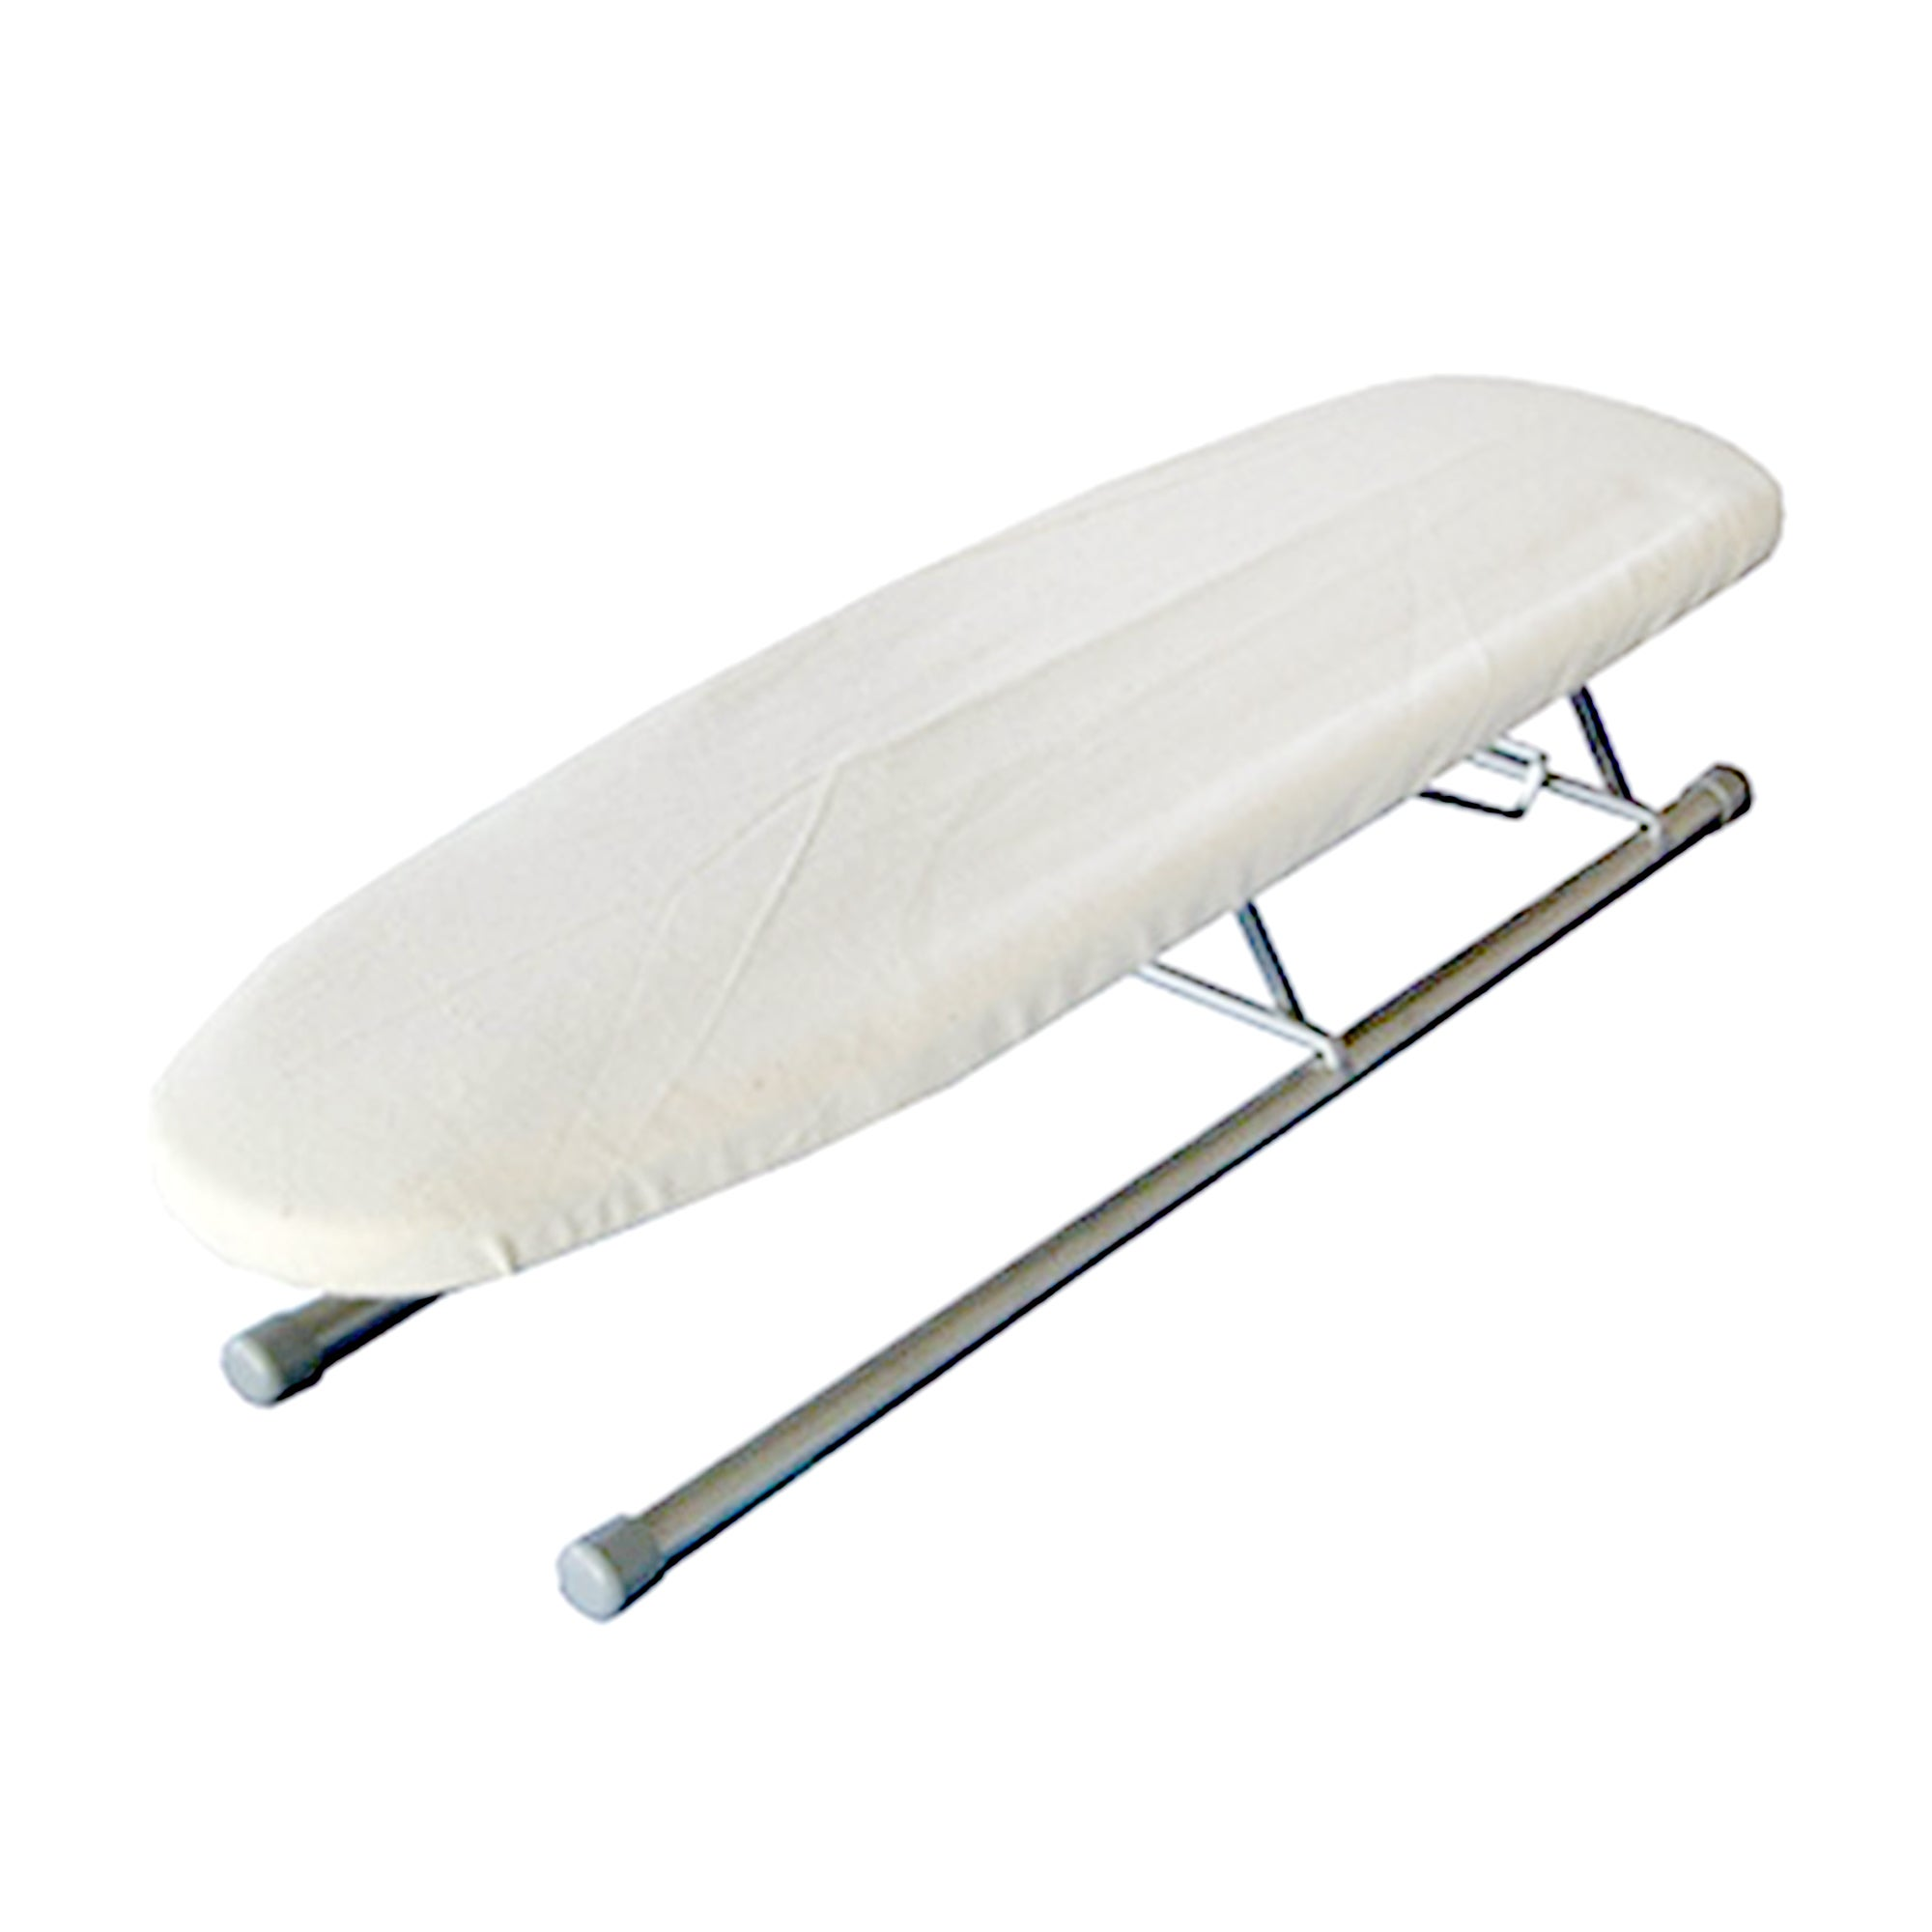 Minky Cream Sleeve Ironing Board